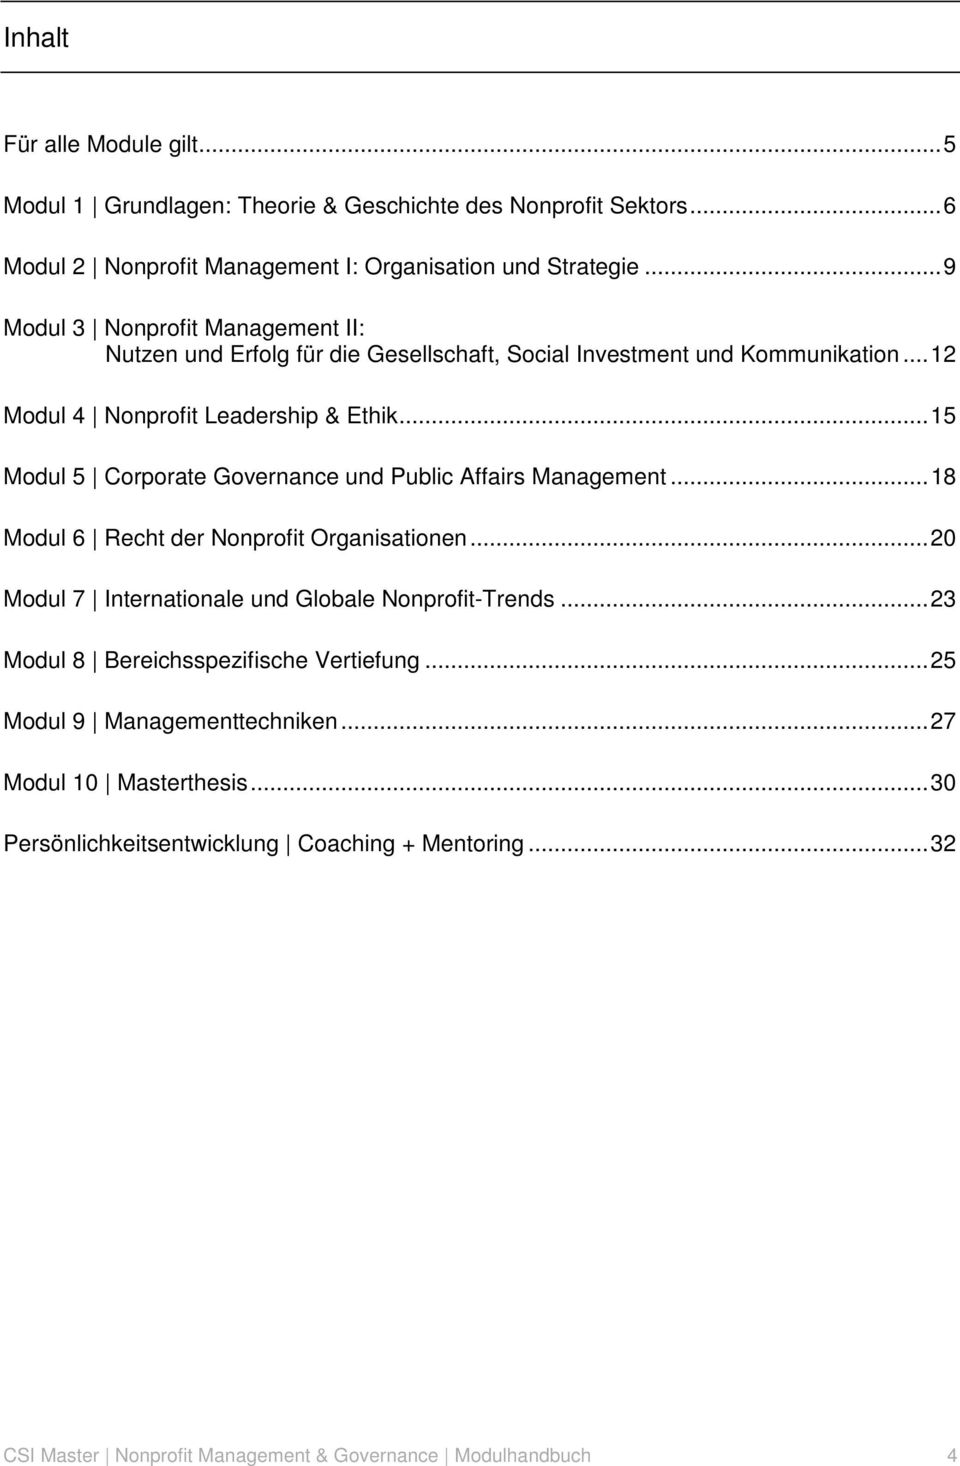 .. 15 Modul 5 Corporate Governance und Public Affairs Management... 18 Modul 6 Recht der Nonprofit Organisationen... 20 Modul 7 Internationale und Globale Nonprofit-Trends.